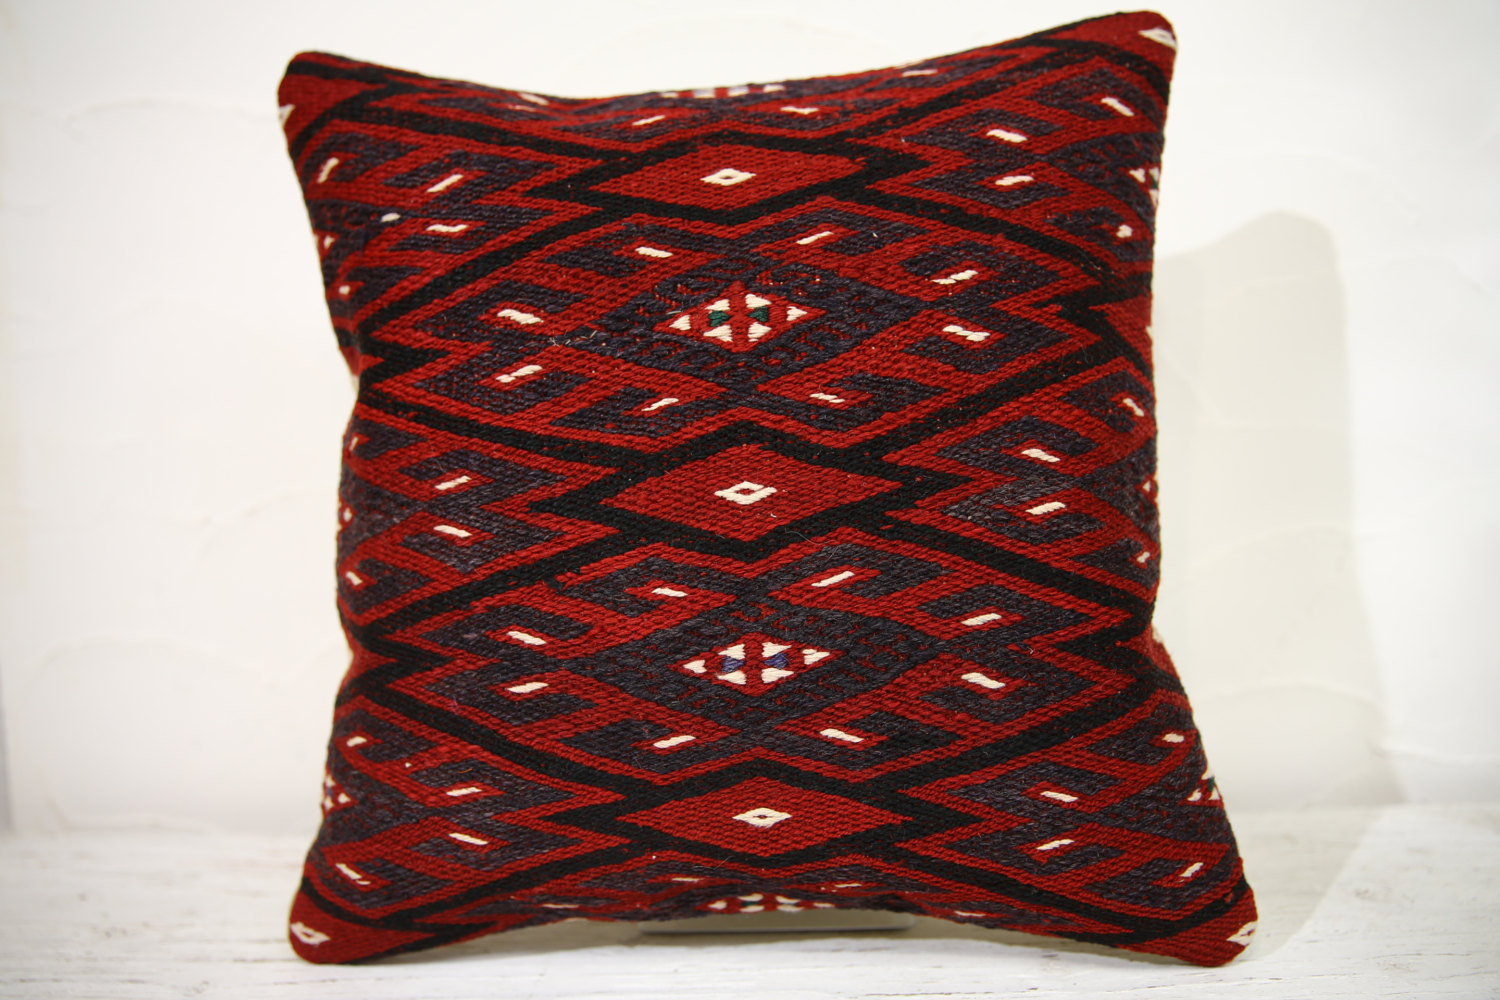 Kilim Pillows |16x16 | Decorative Pillows | 755 | Accent Pillows , turkish pillo